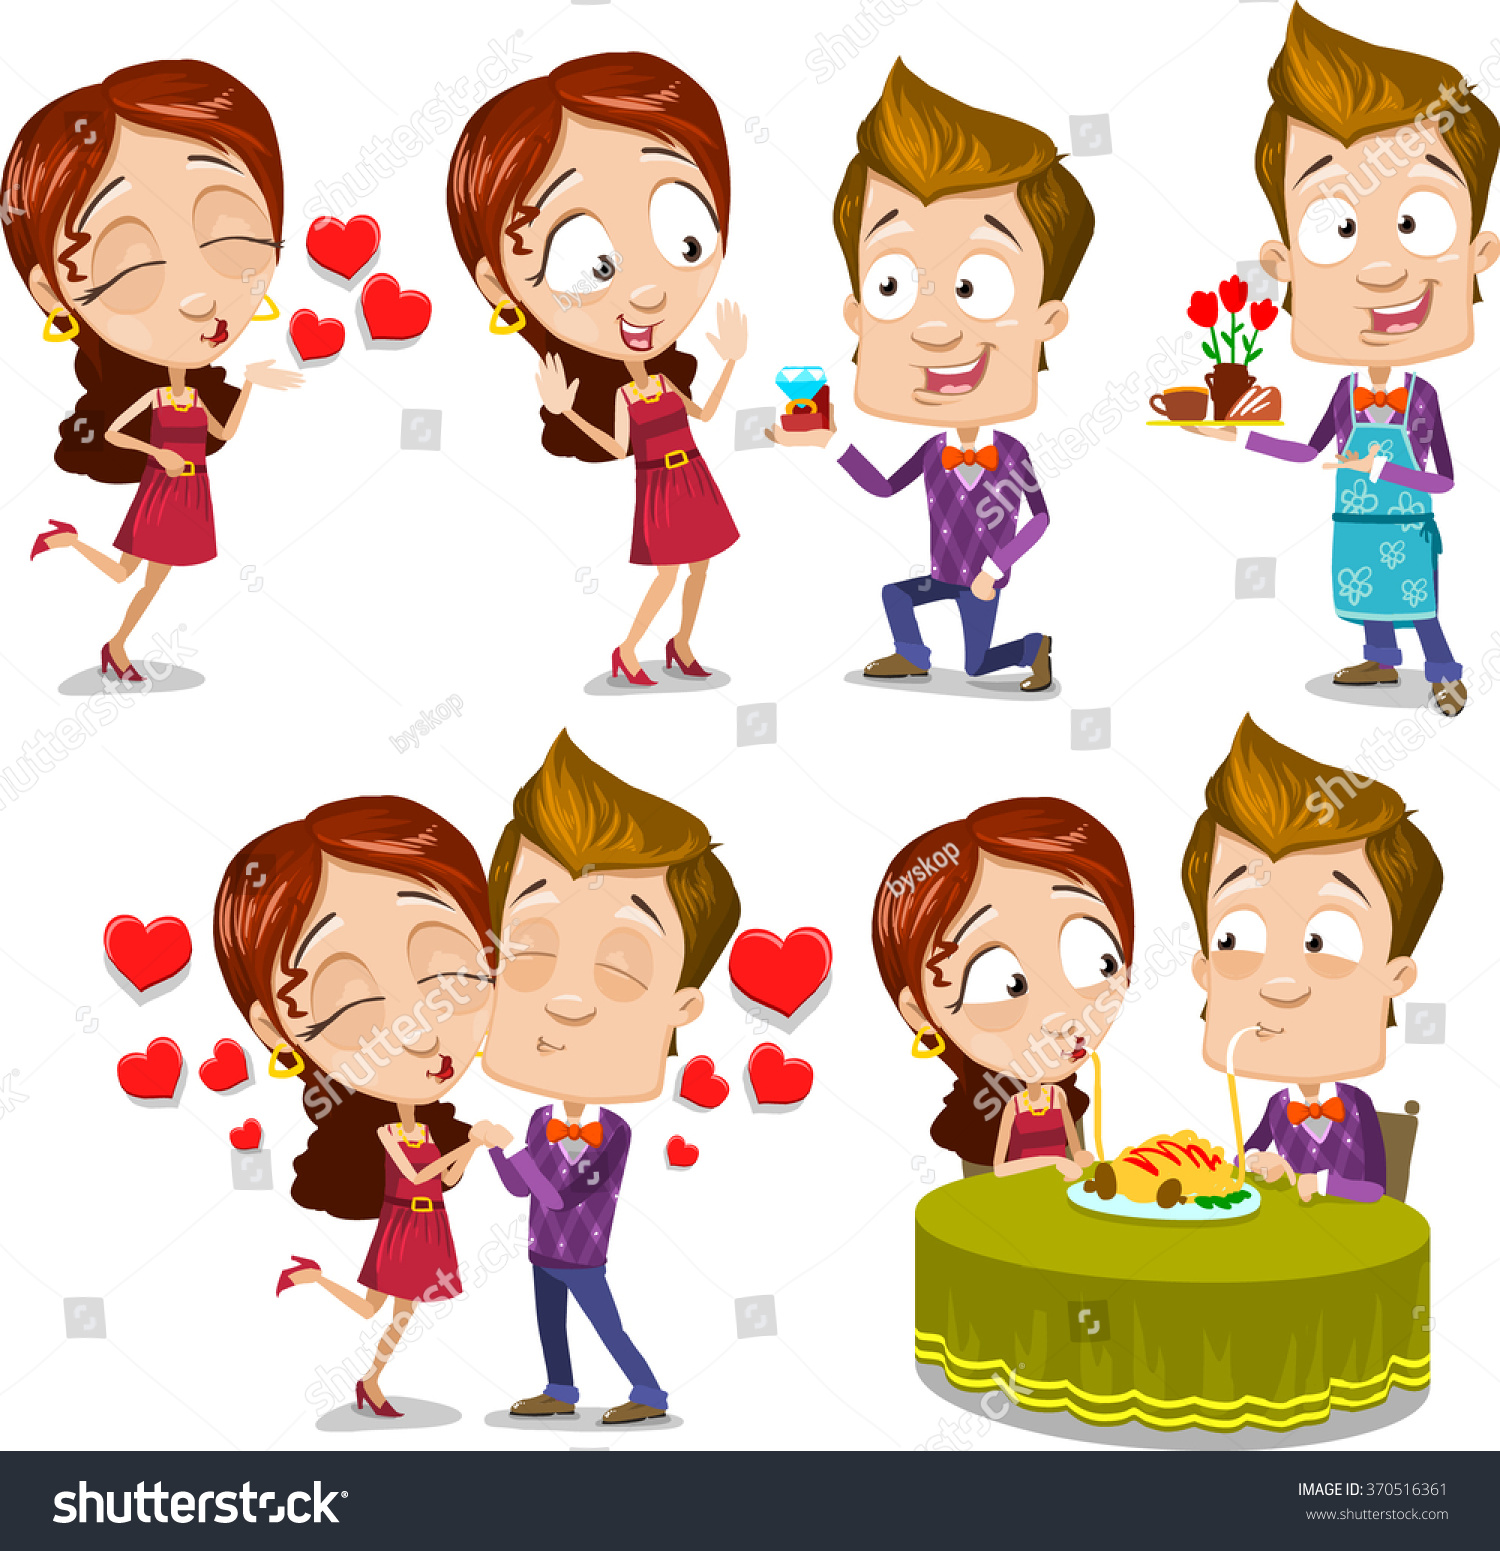 Cartoon Characters Kissing Each Other : Cartoon character vector set young couple stock